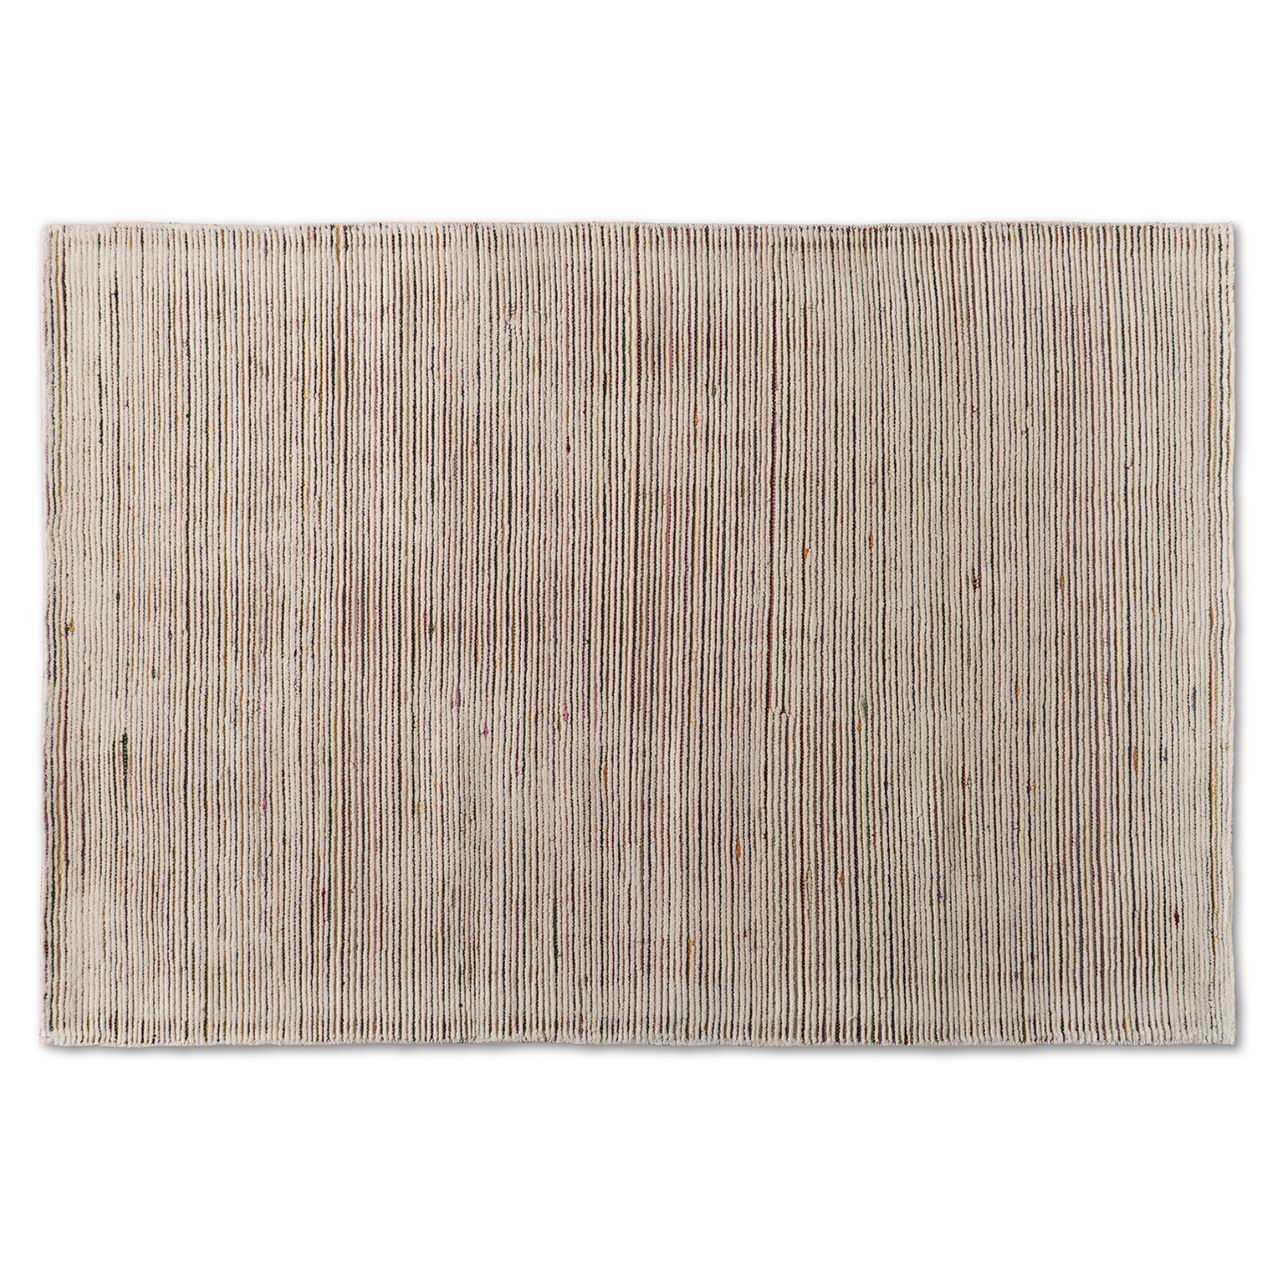 Baxton Studio Finsbury Multi-Colored Hand-Tufted Wool Blend Area Rug